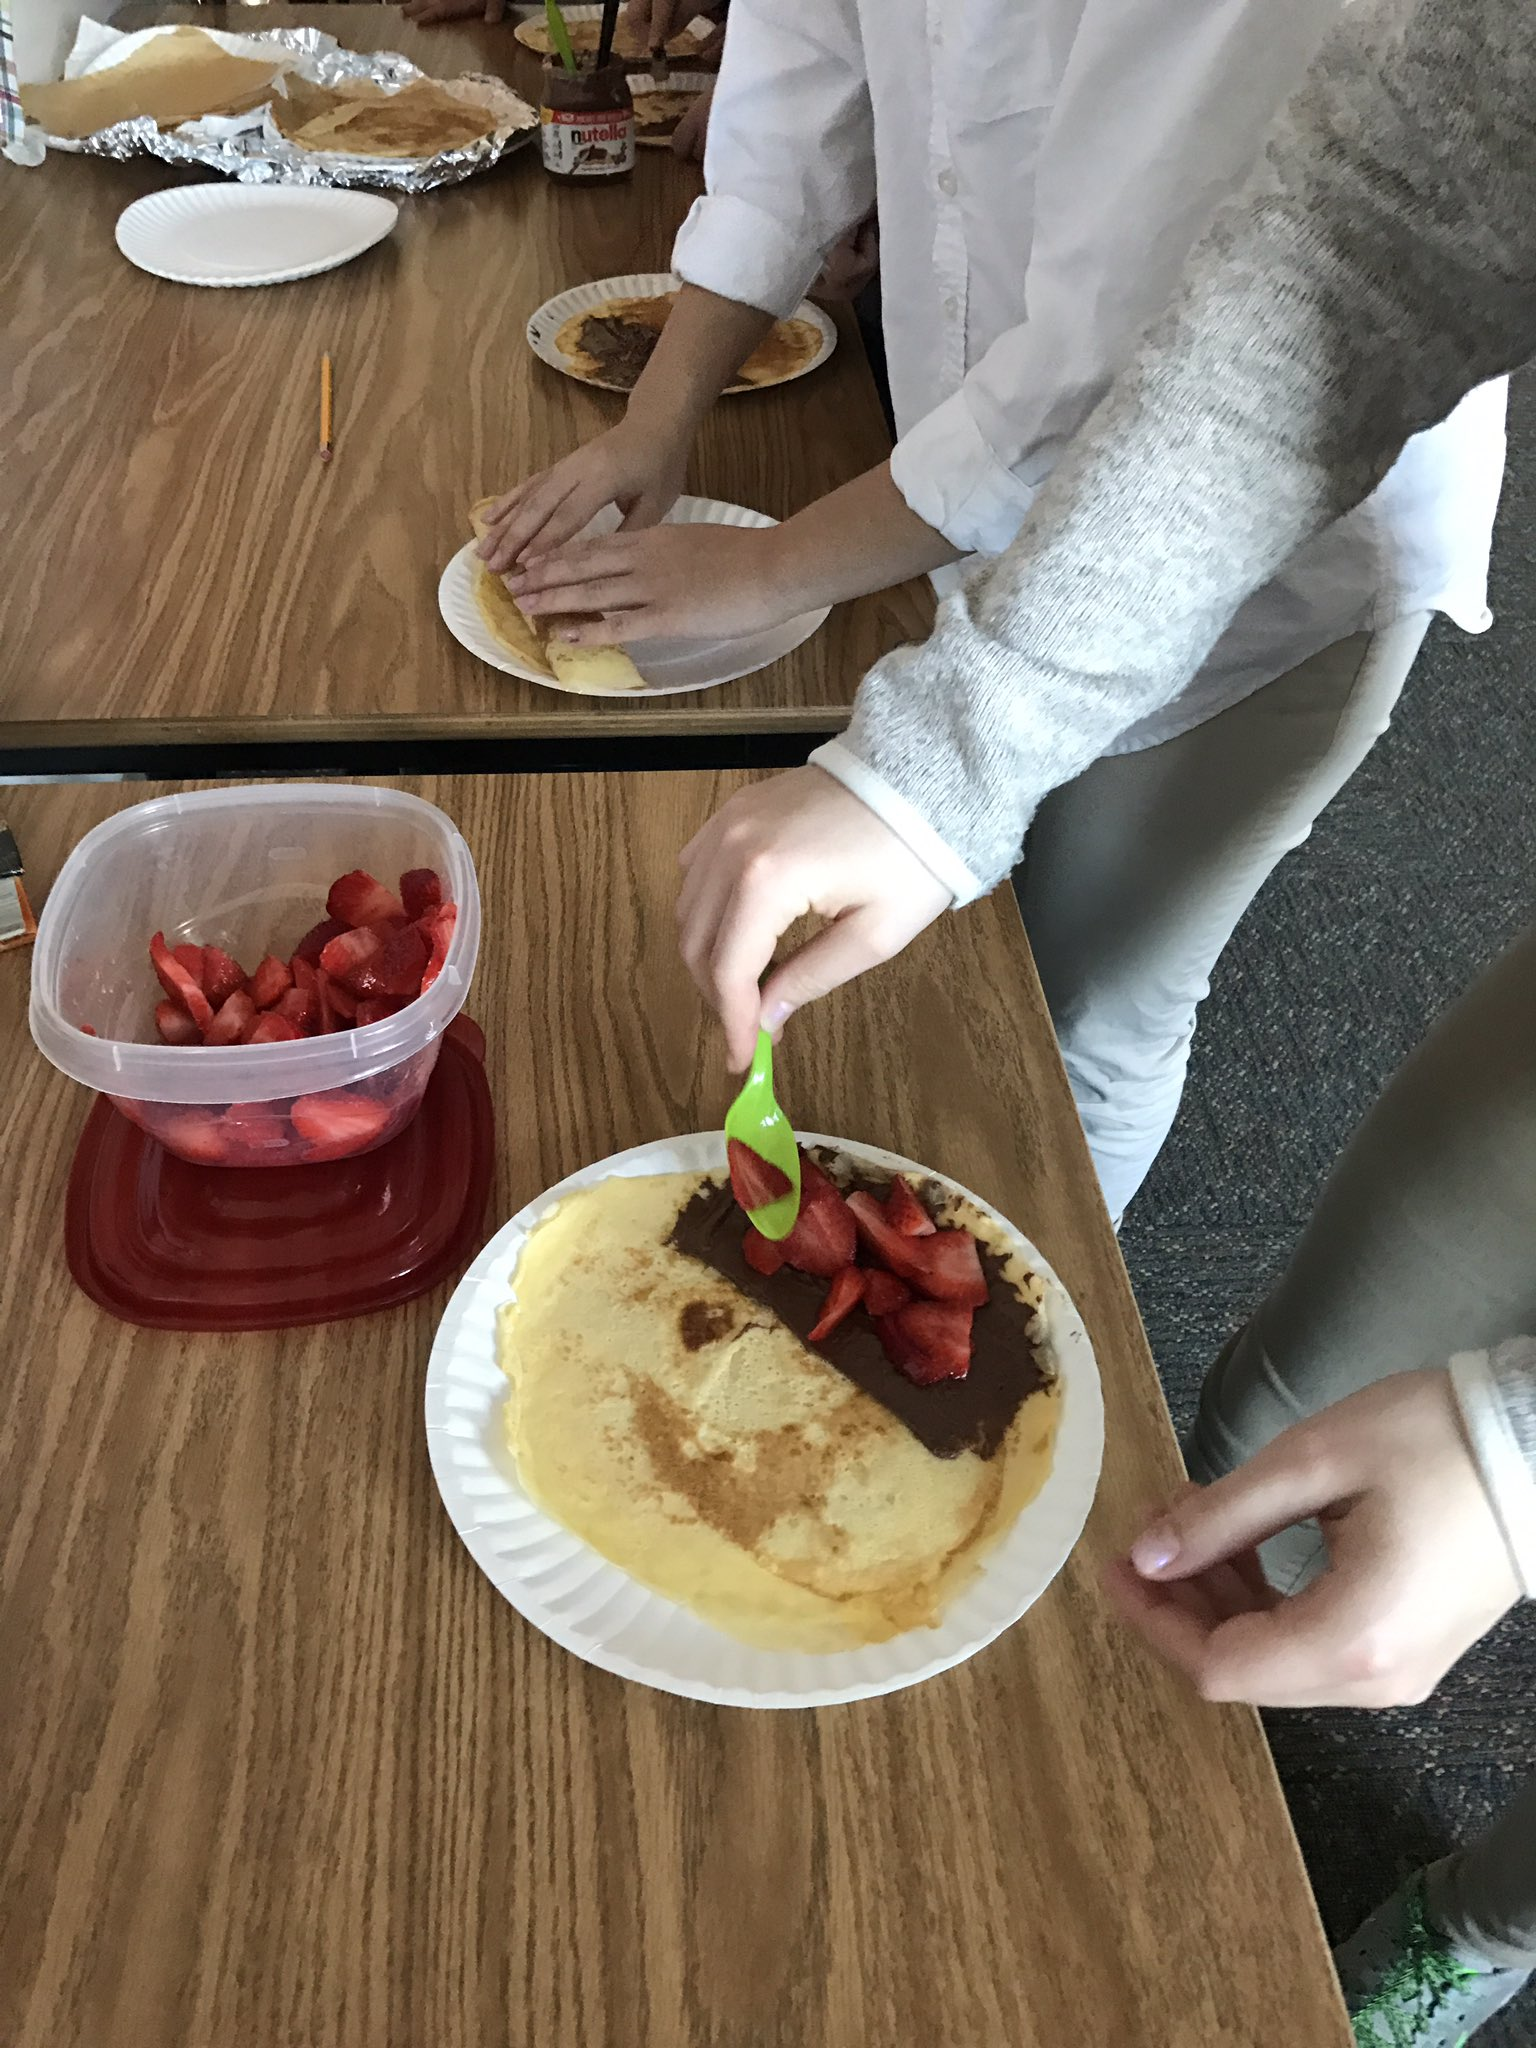 A little late but celebrating la Chandeleur-equivalent of Groundhog Day-with crêpes in MS French I class.  #myflinthill #langchat https://t.co/jdGrZ96yuk